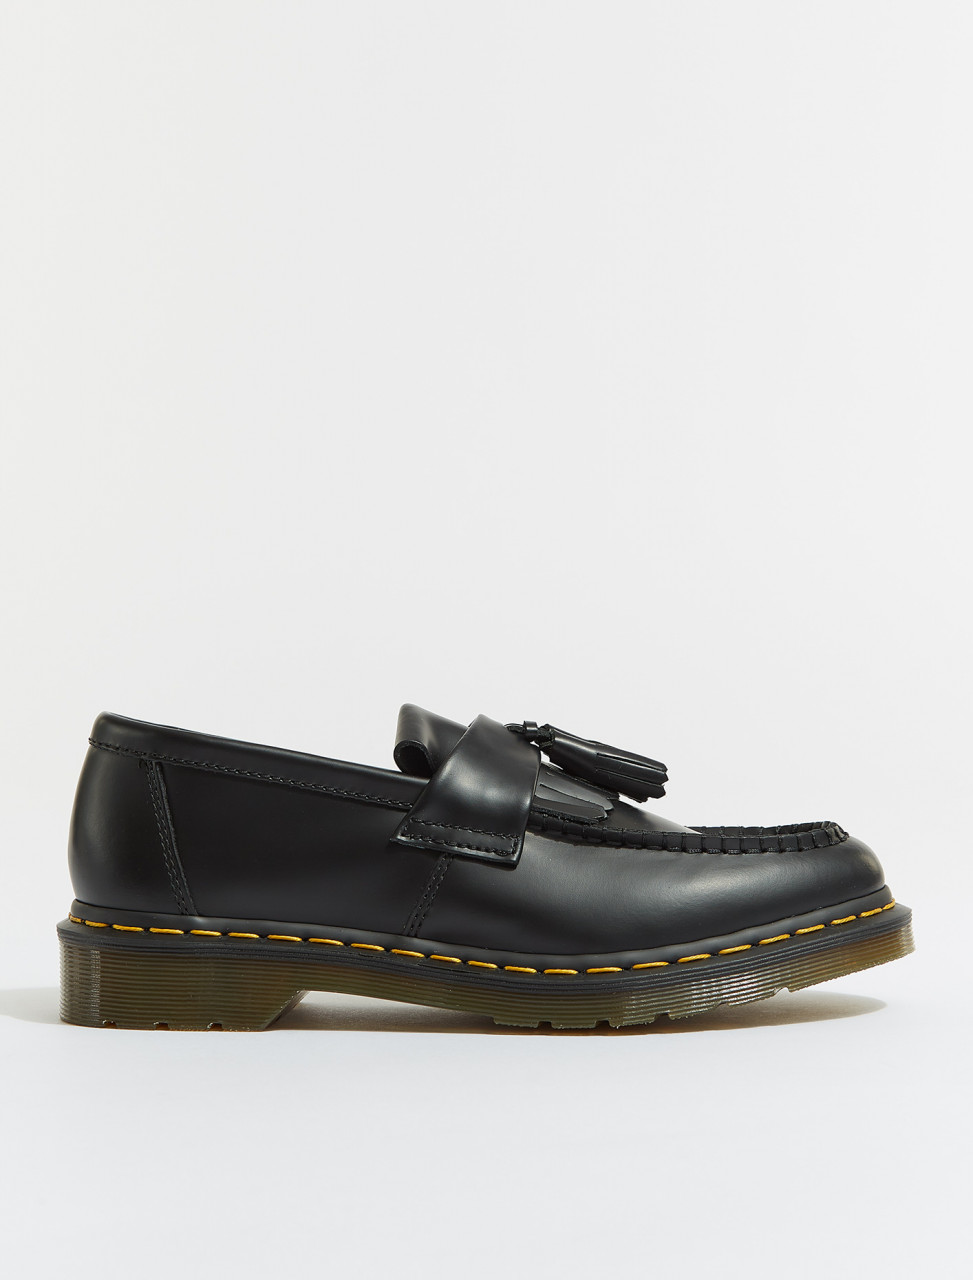 22209001 DR. MARTENS ADRIAN YS BLACK SMOOTH